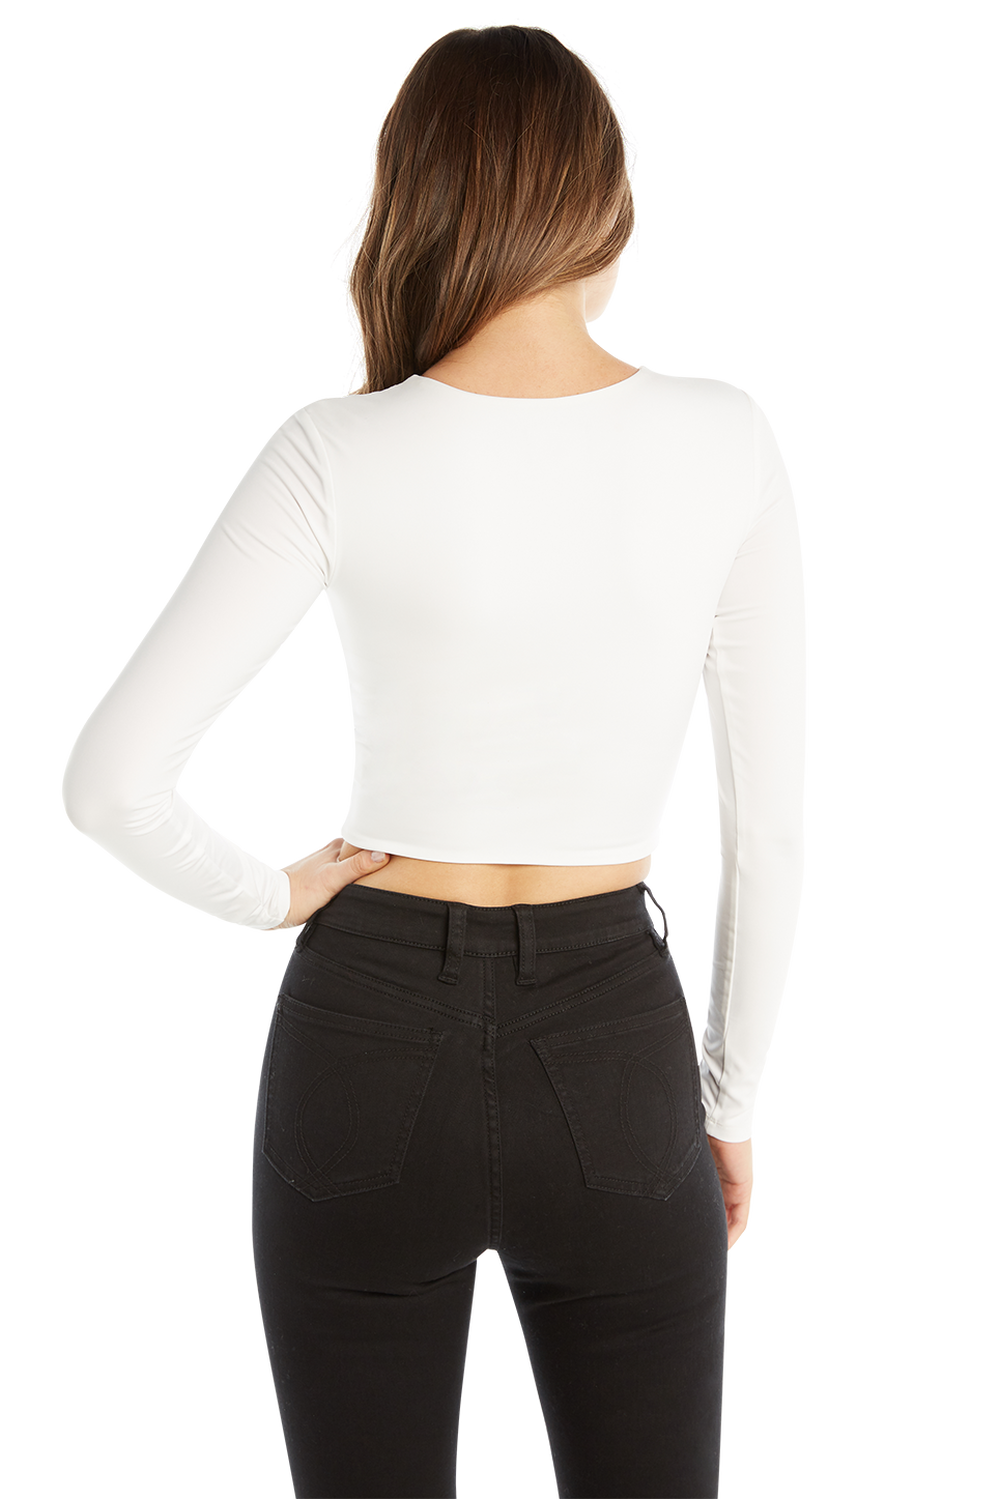 BRIA LS CROP TOP in colour BRIGHT WHITE